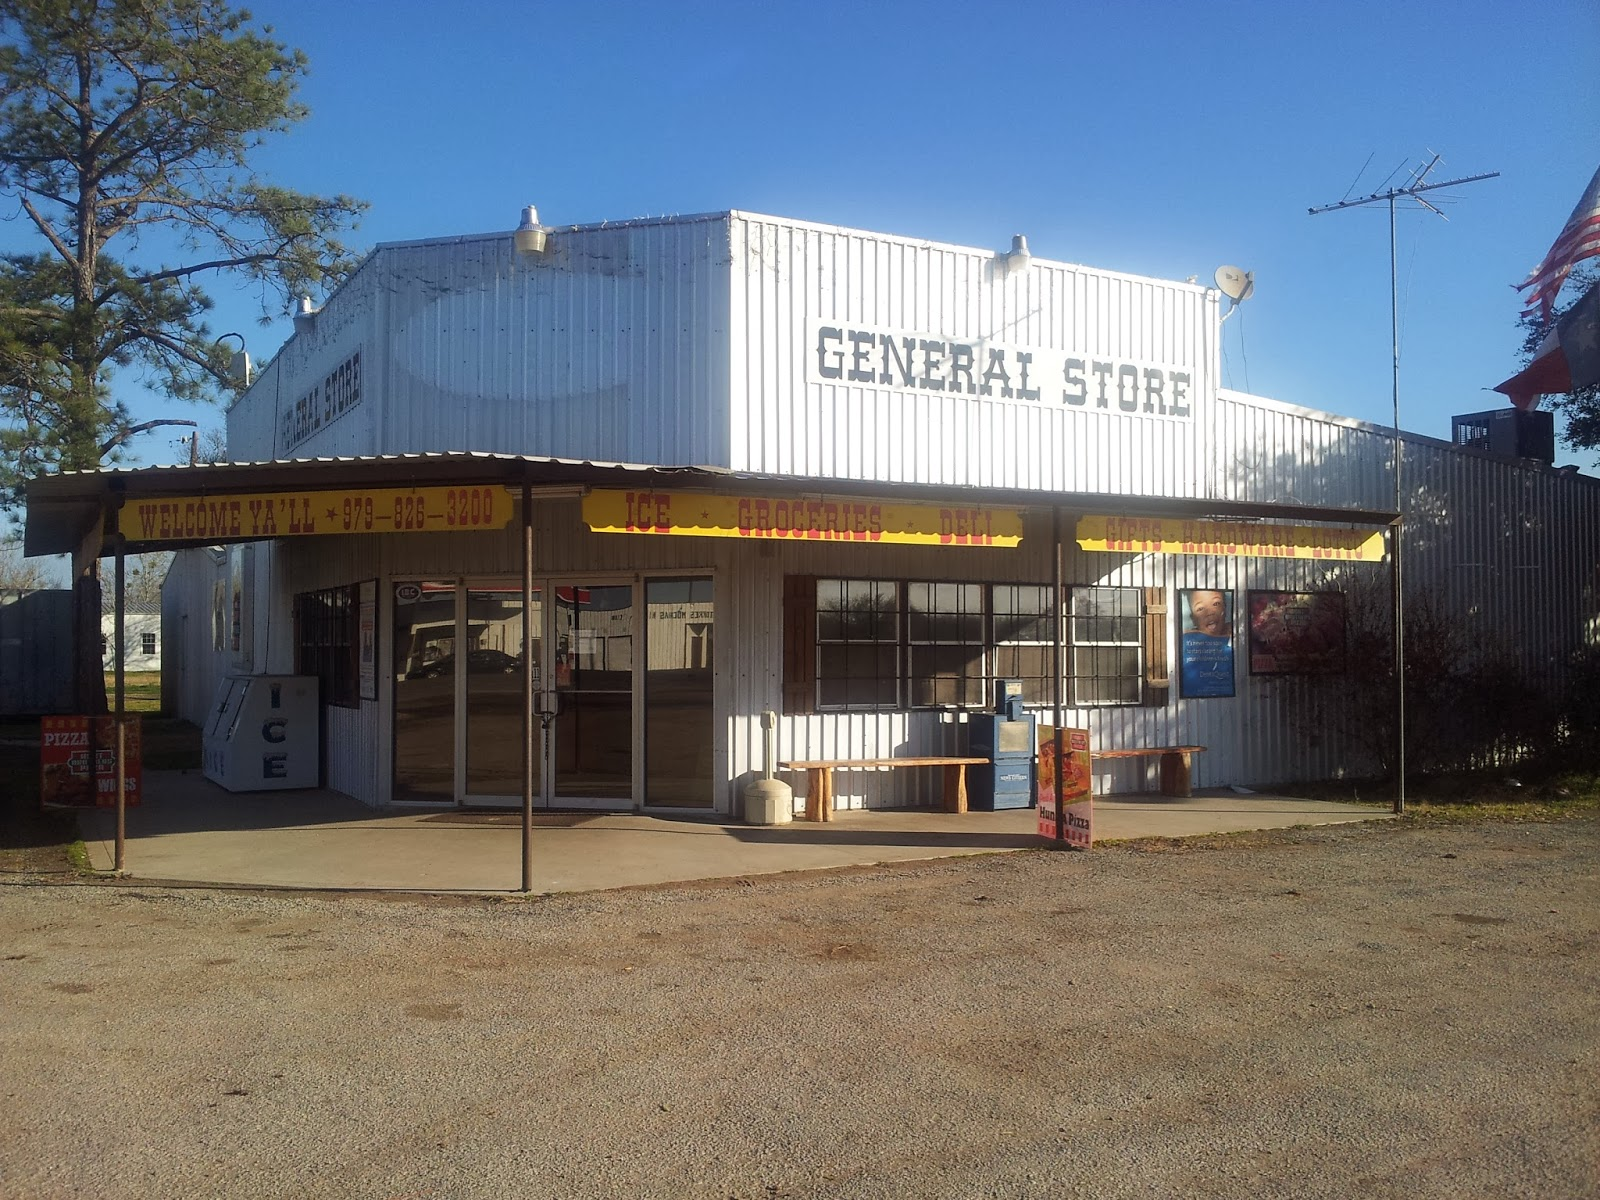 First rest stop was in parking lot of this shuttered general store